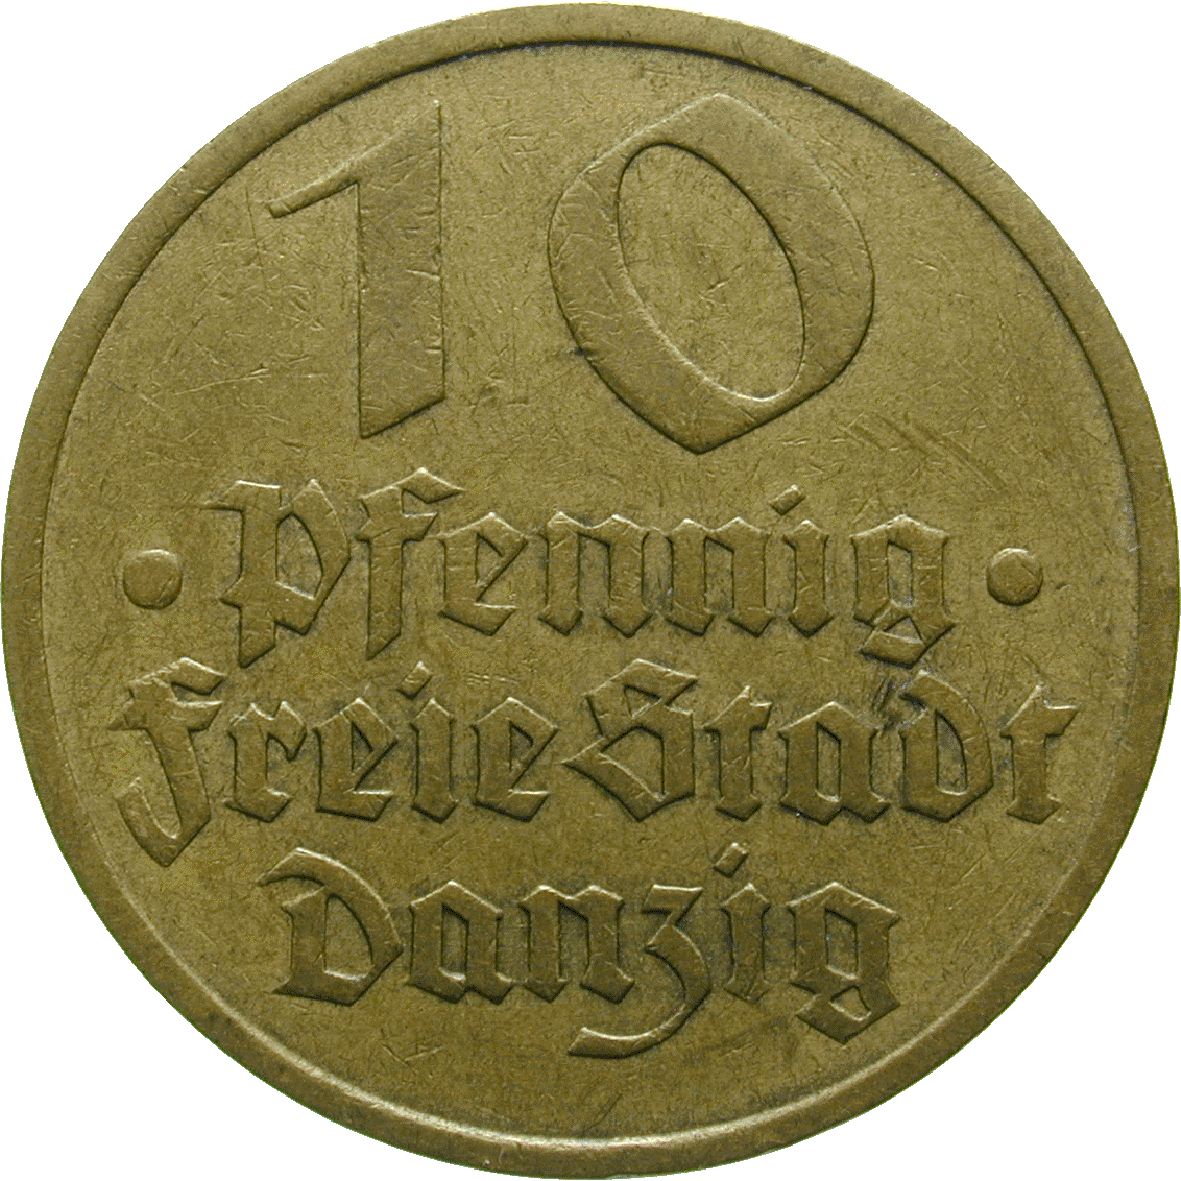 Weimar Republic, Free City of Danzig, 10 Pfennigs 1932 (obverse)